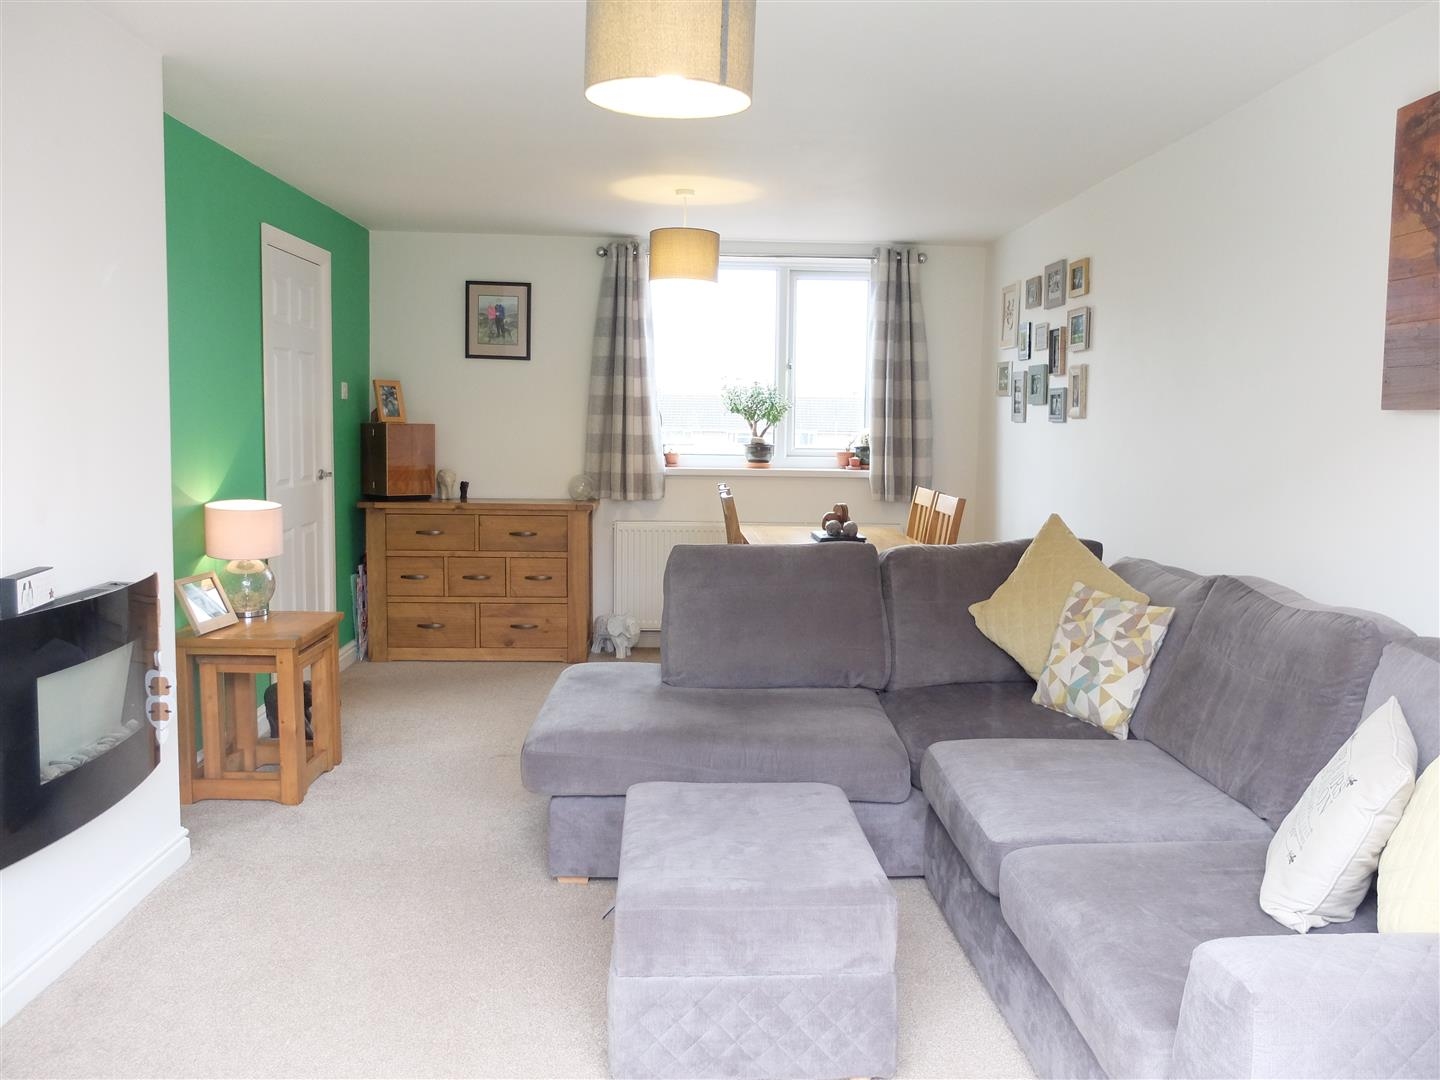 3 Bedrooms House - Terraced For Sale 24 Bannisdale Way Carlisle